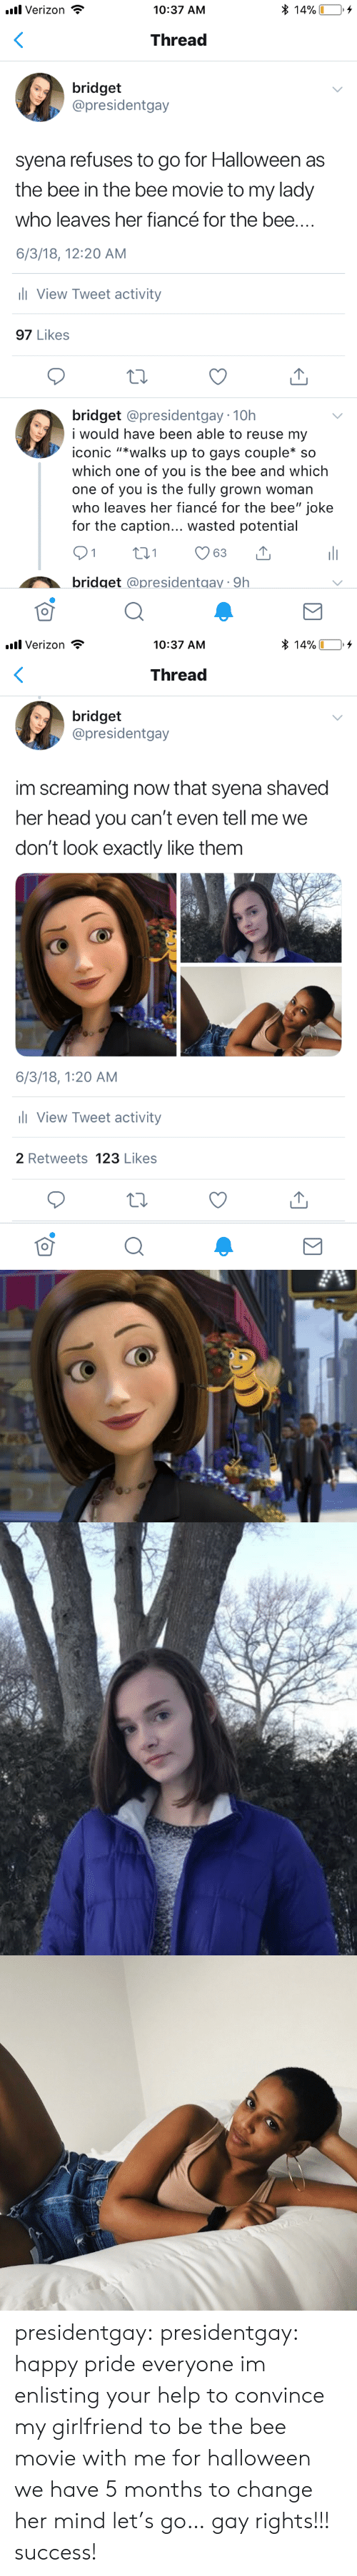 "caption: * 14%  l Verizon  10:37 AM  Thread  bridget  @presidentgay  syena refuses to go for Halloween as  the bee in the bee movie to my lady  who leaves her fiancé for the bee....  6/3/18, 12:20 AM  ll View Tweet activity  97 Likes  bridget @presidentgay 10h  i would have be  able to reuse my  iconic ""*walks up to gays couple* so  which one of you is the bee and which  one of you is the fully grown woman  who leaves her fiancé for the bee"" joke  for the caption... wasted potential  21  t1  63  bridget @presidentgay 9h   l Verizon  * 14%  10:37 AM  Thread  bridget  @presidentgay  im screaming now that syena shaved  her head you can't even tell me we  don't look exactly like them  6/3/18, 1:20 AM  l View Tweet activity  2 Retweets 123 Likes presidentgay:  presidentgay: happy pride everyone im enlisting your help to convince my girlfriend to be the bee movie with me for halloween we have 5 months to change her mind let's go… gay rights!!! success!"